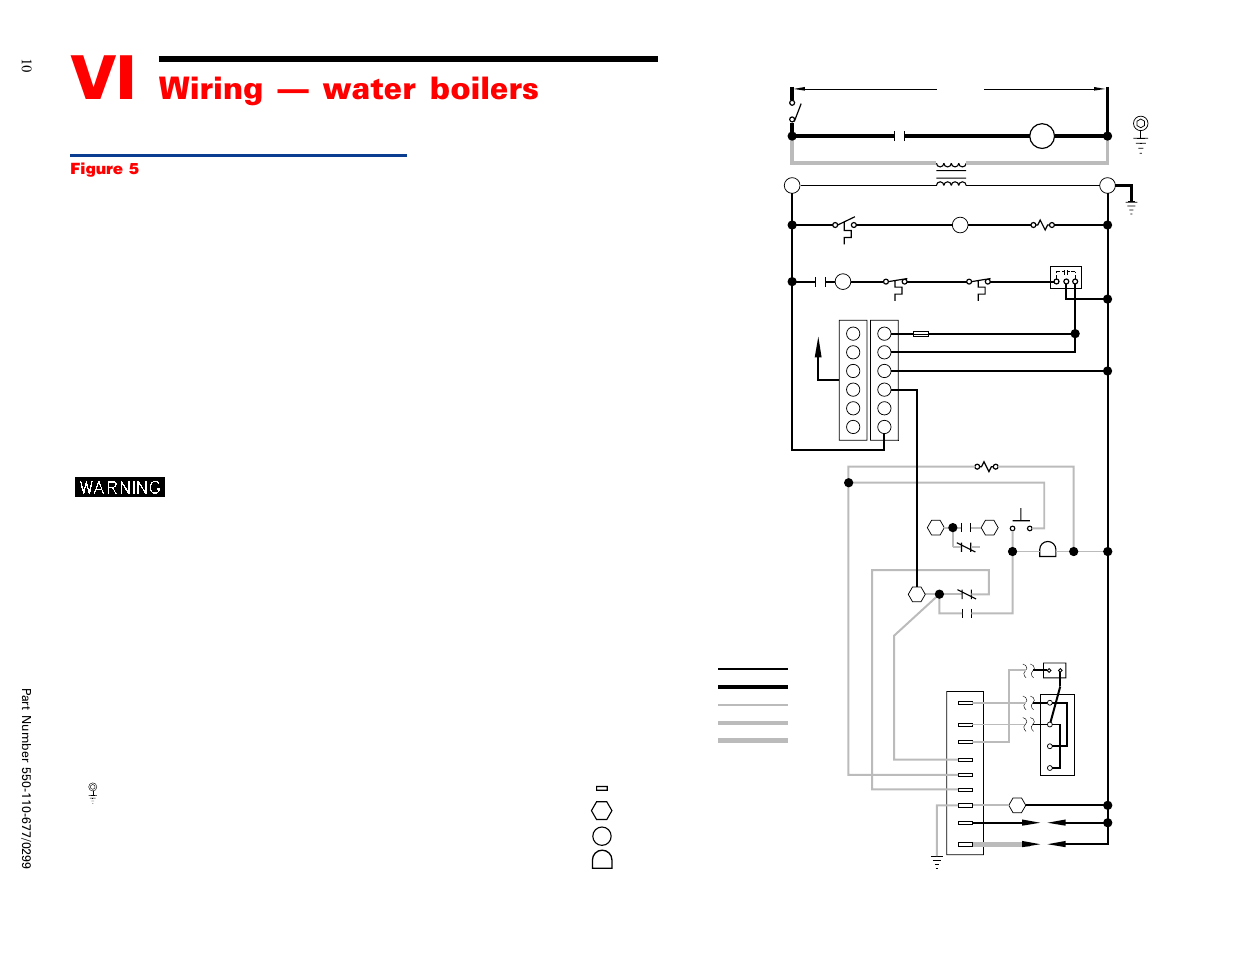 Wiring        water boilers  Ladder    wiring       diagram      Weil